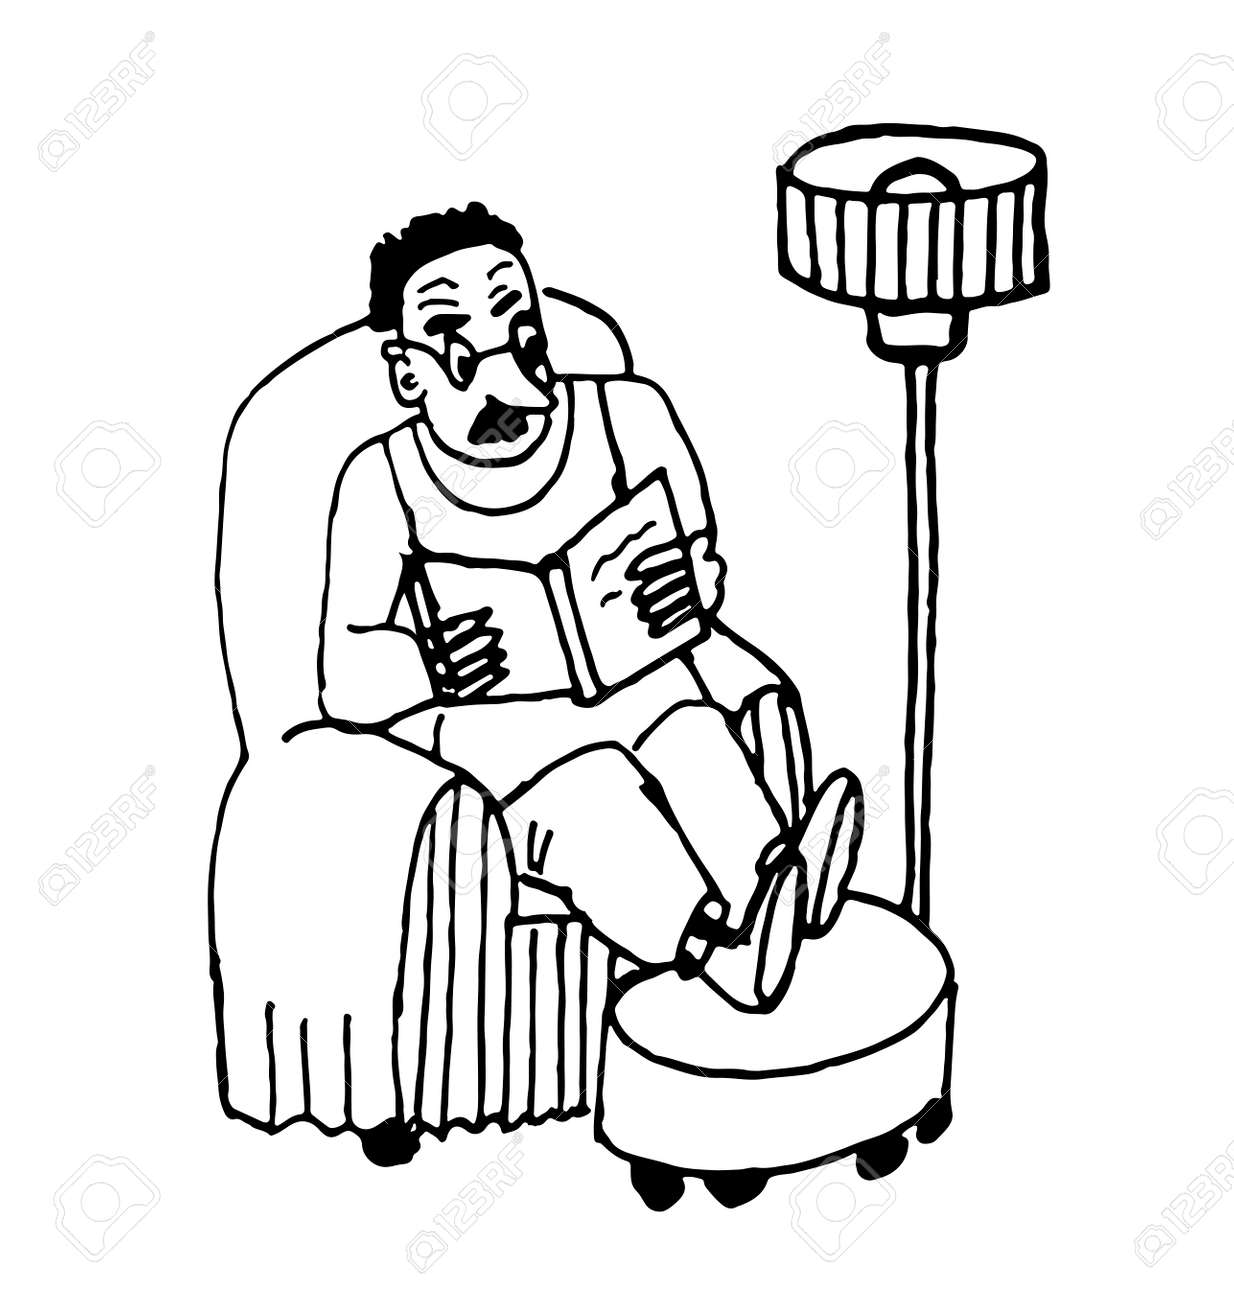 Man sitting in chair drawing - Download